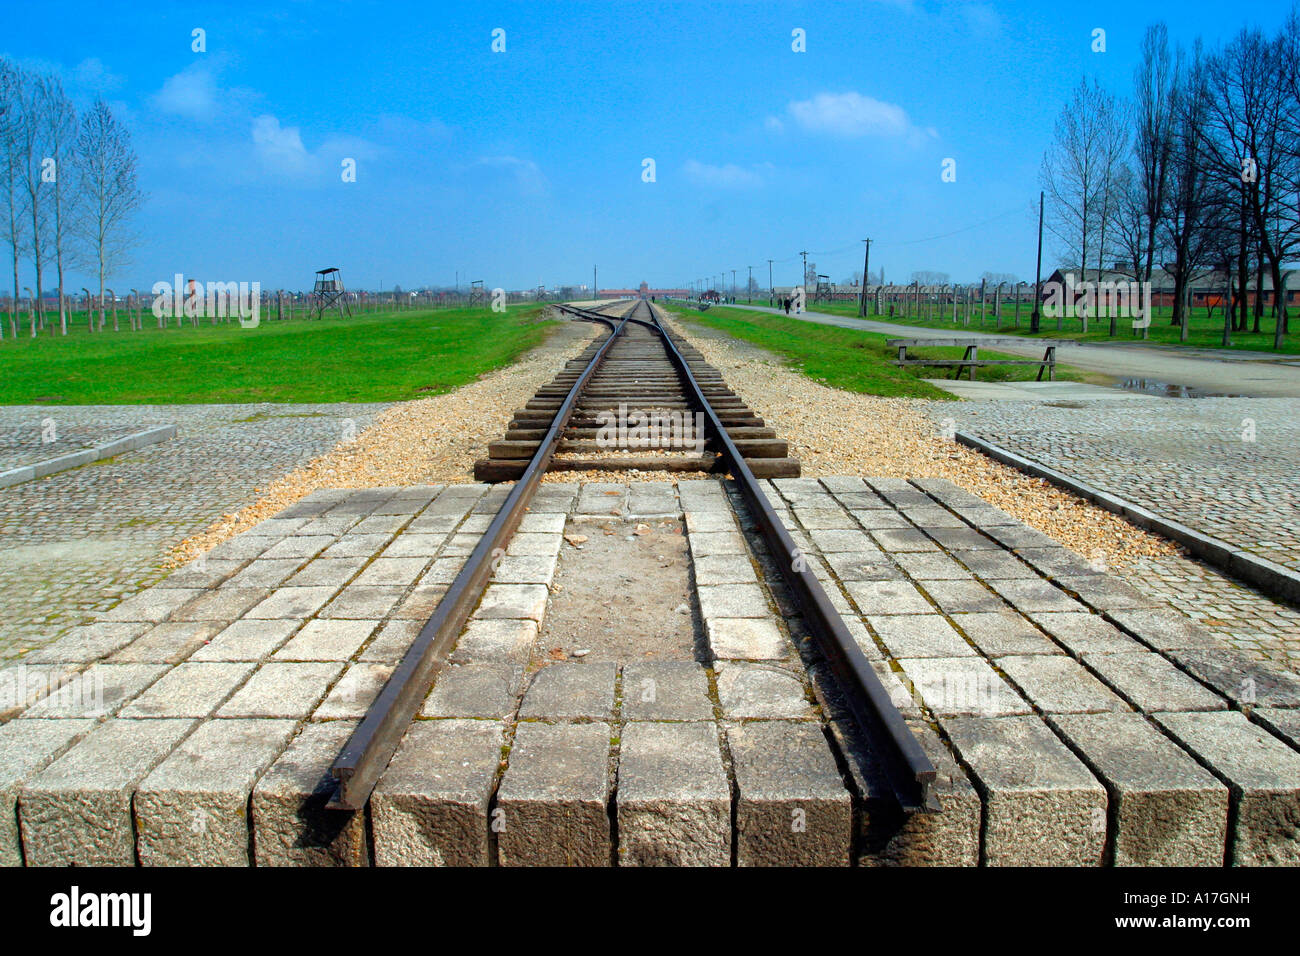 The train to death at Auschwitz concentration camp, Birkenau, Poland. - Stock Image